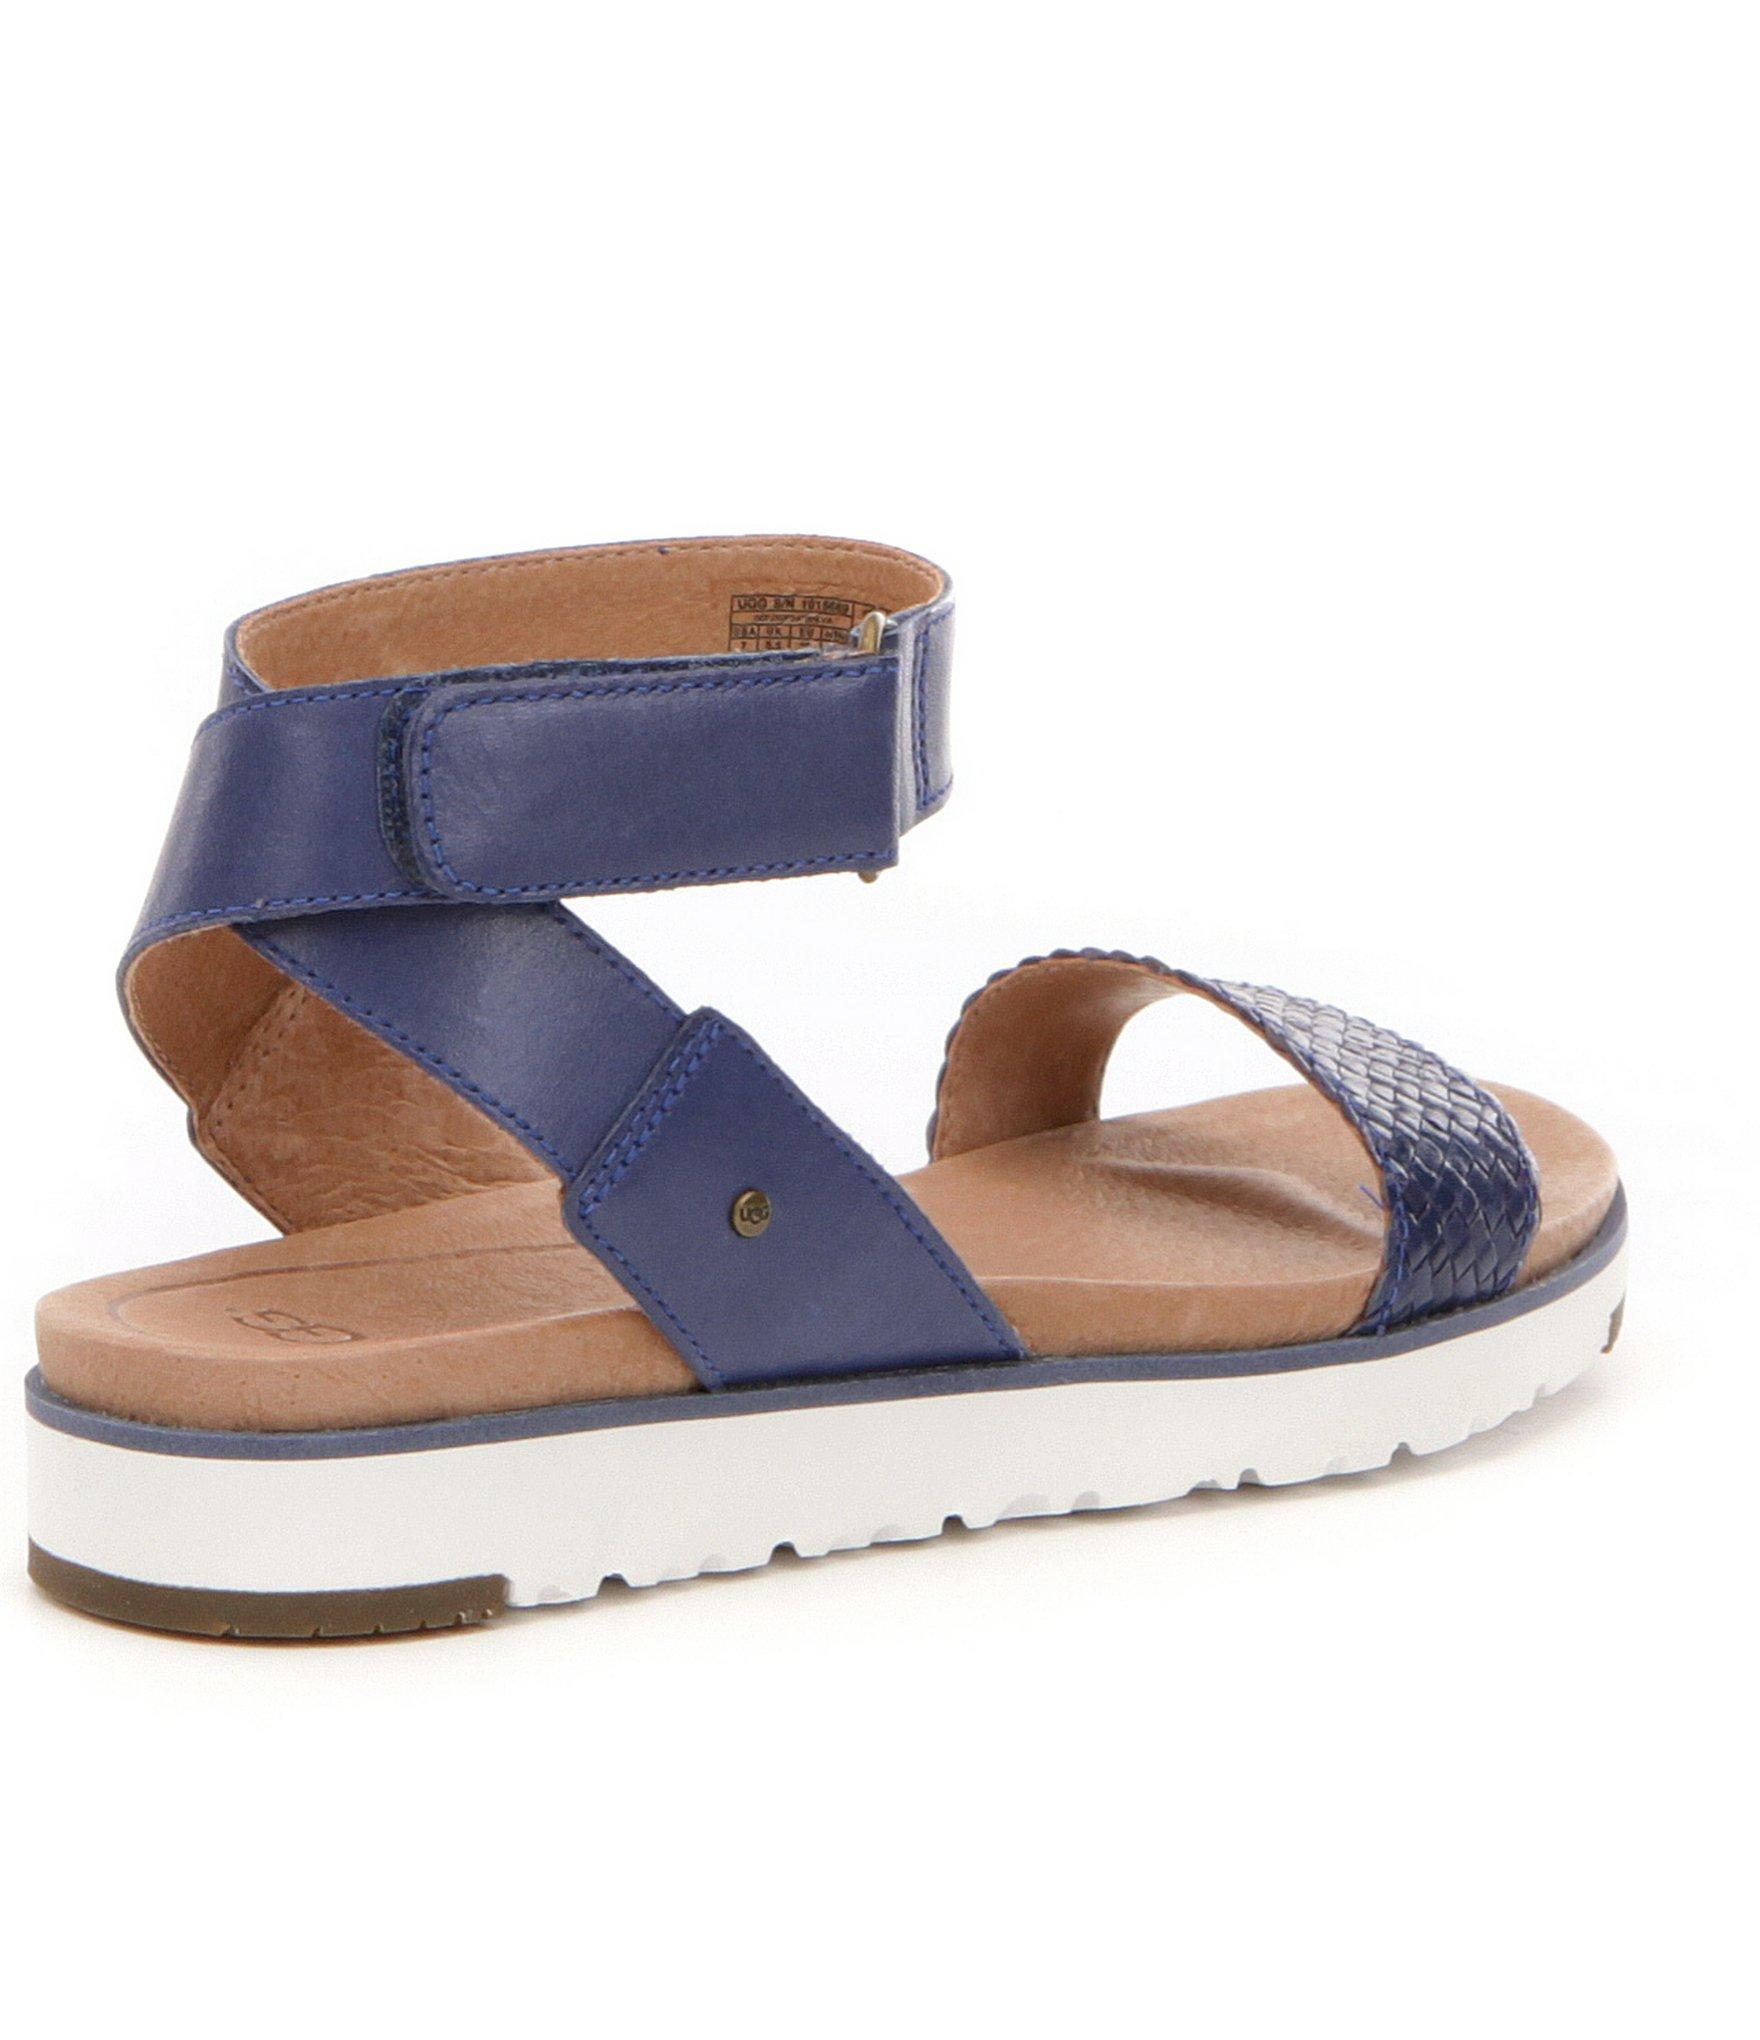 48b2748447d Ugg Blue ® Laddie Leather Sandals